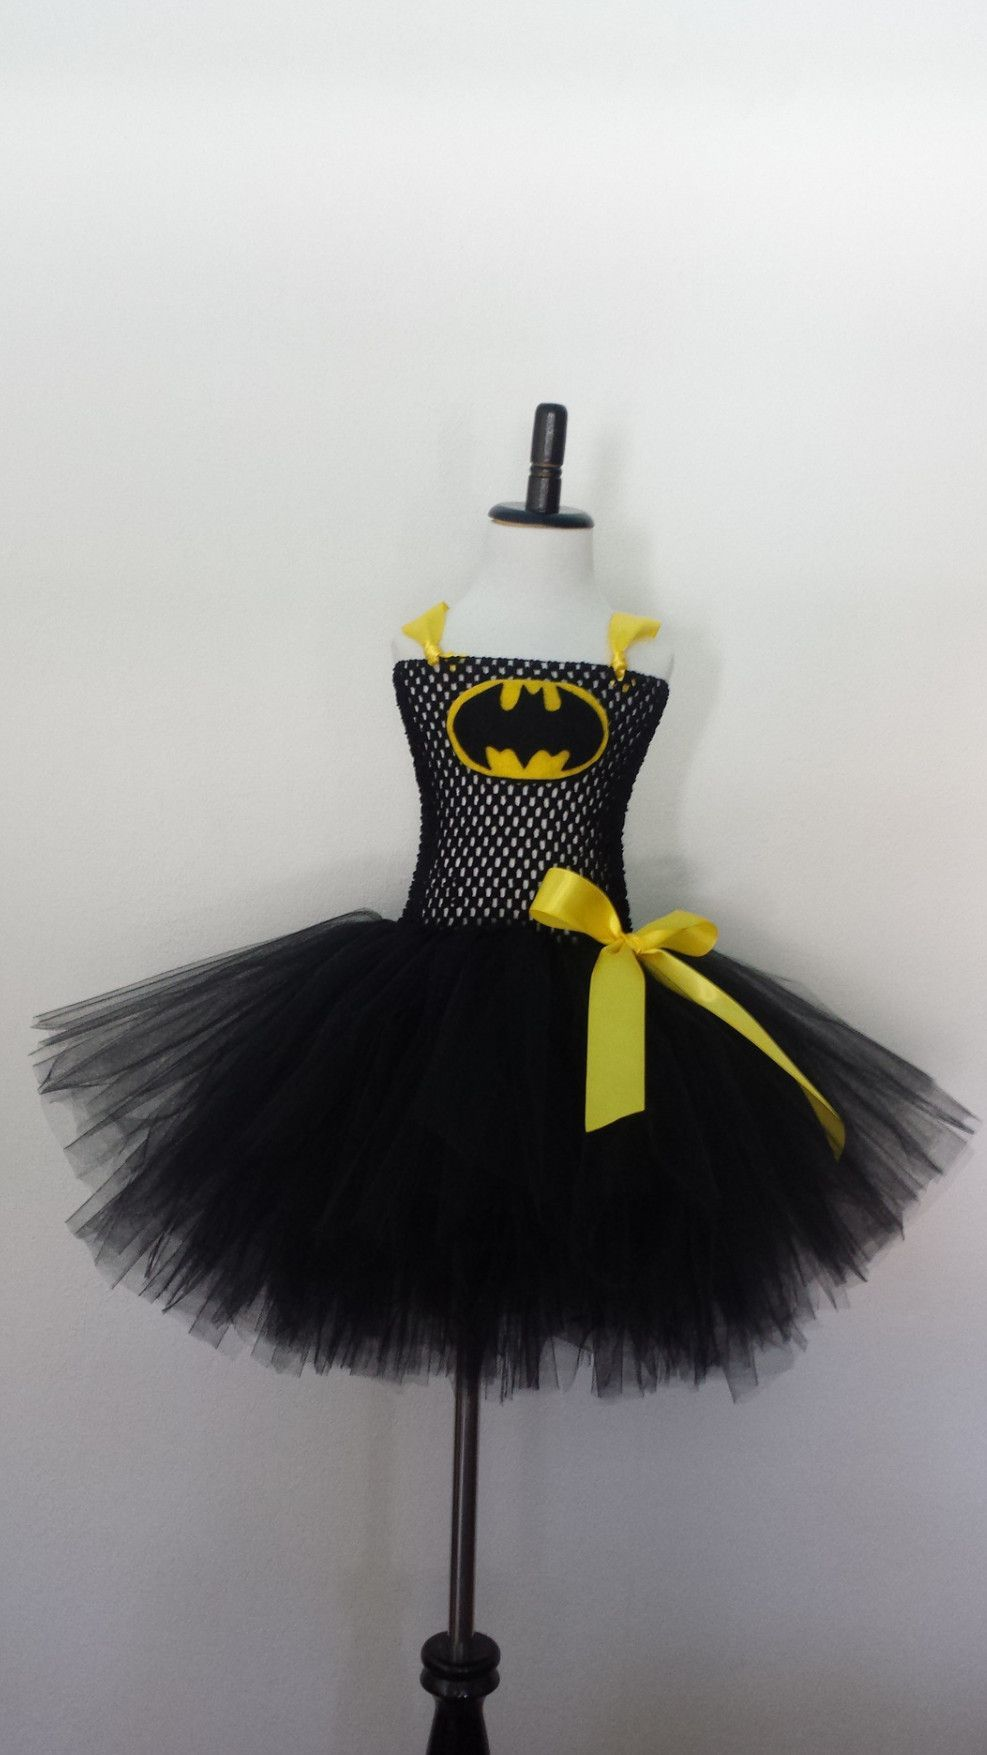 Batman Inspired Tutu Dress | Tutus | Pinterest